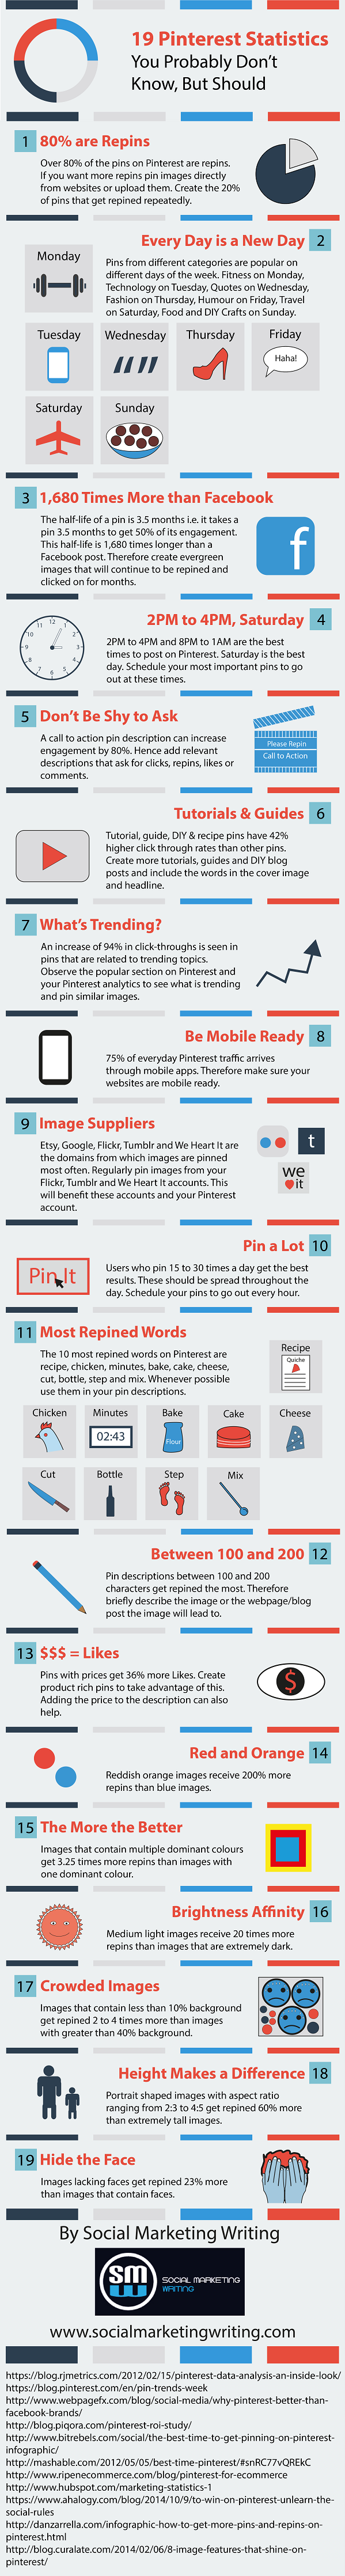 19-Pinterest-Statistics-You-Probably-Don't-Know-But-Should-Infographic.png